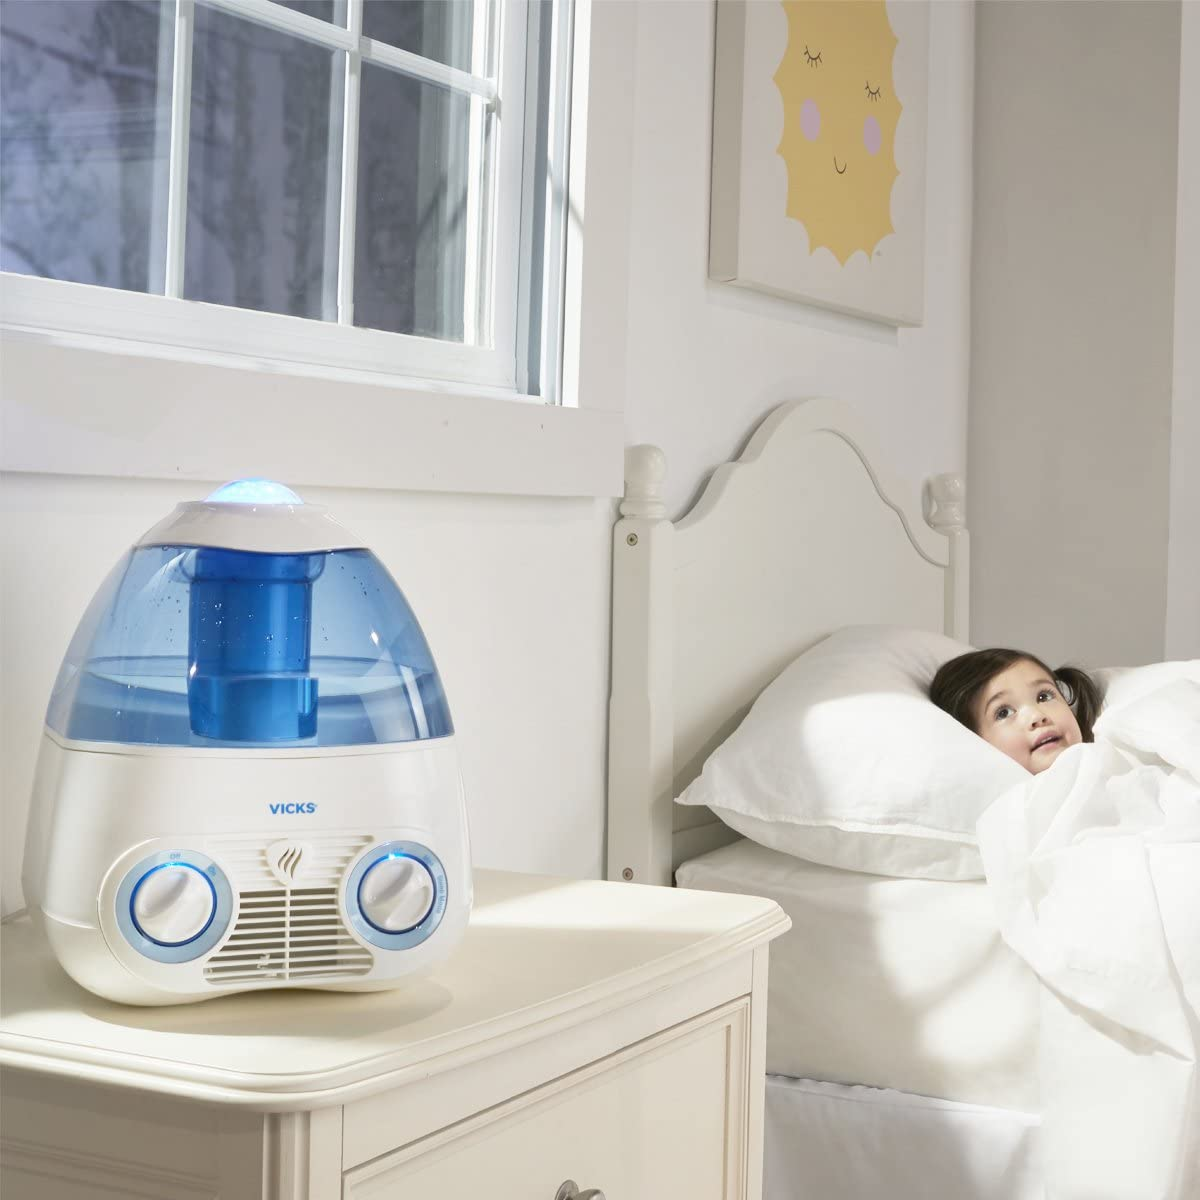 Vicks Starry Night Cool Moisture Humidifier with Projector /& VapoPad Scent Pad Heater Pink